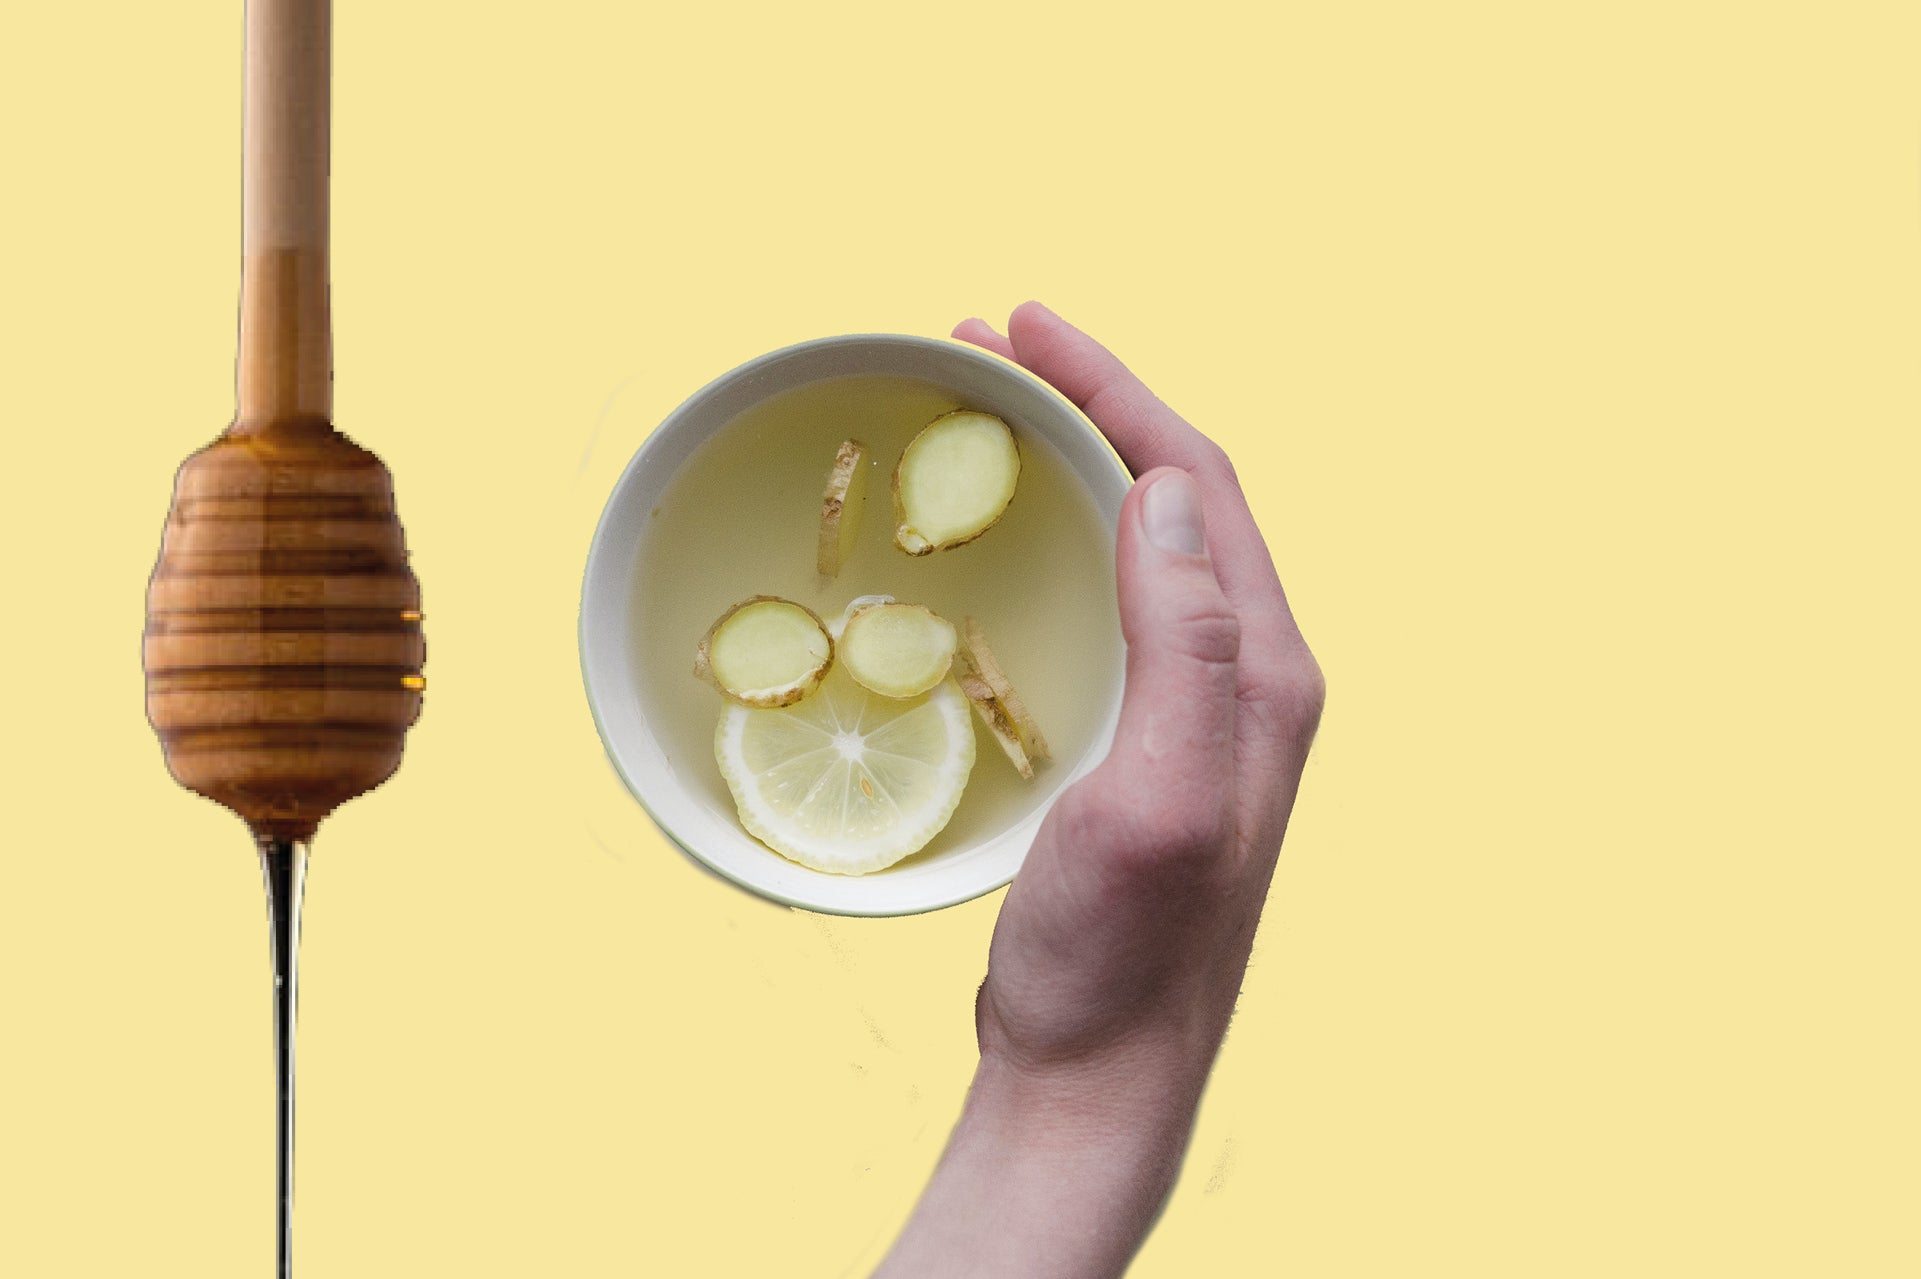 Lemon and honey, which both have health benefits